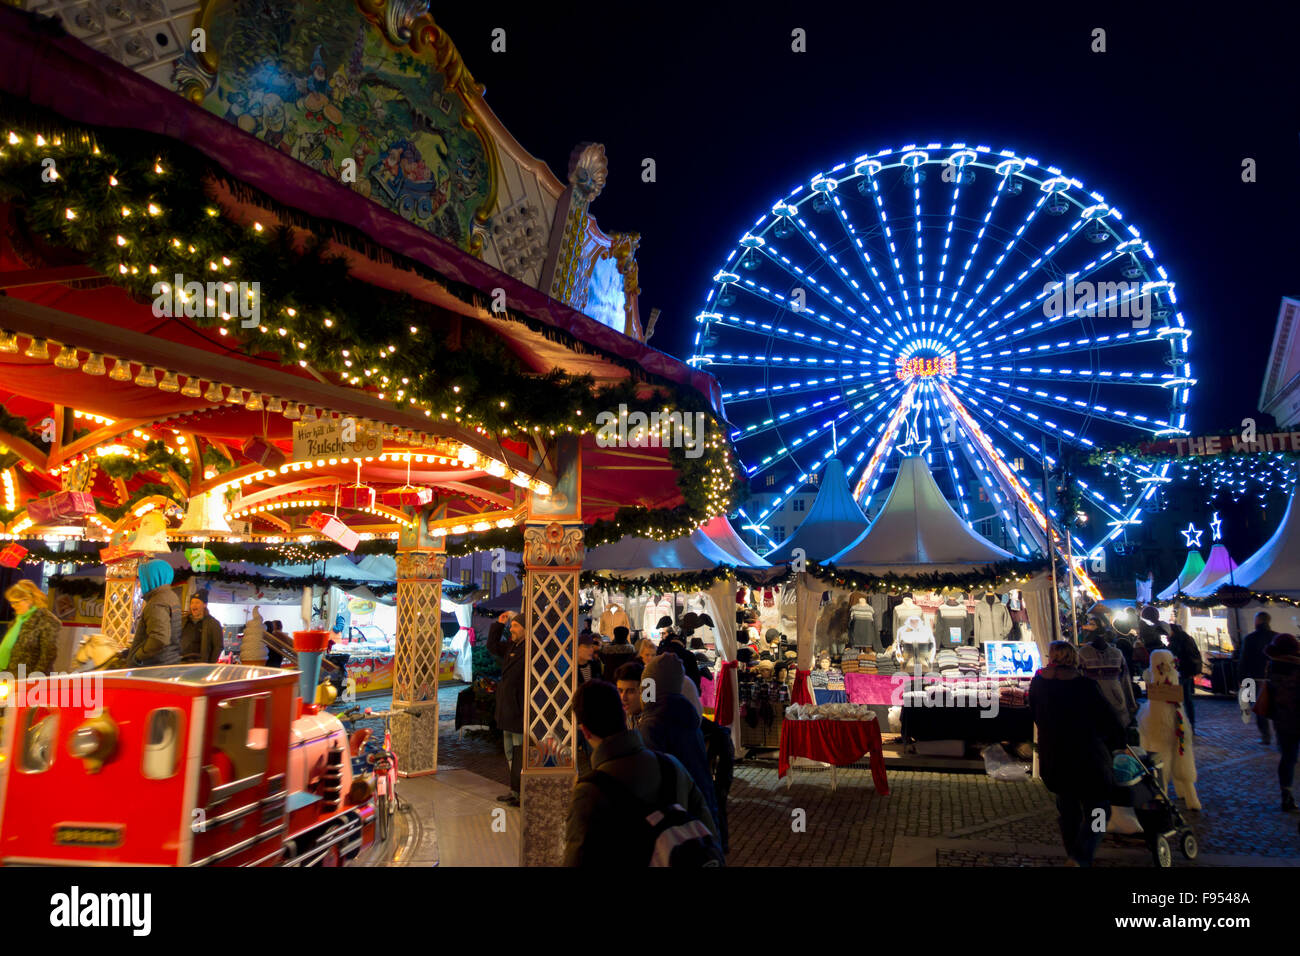 Merry-go-round with Christmas train, ferris wheel, fun fair and stalls at the new Christmas market at Nytorv, Copenhagen - Stock Image